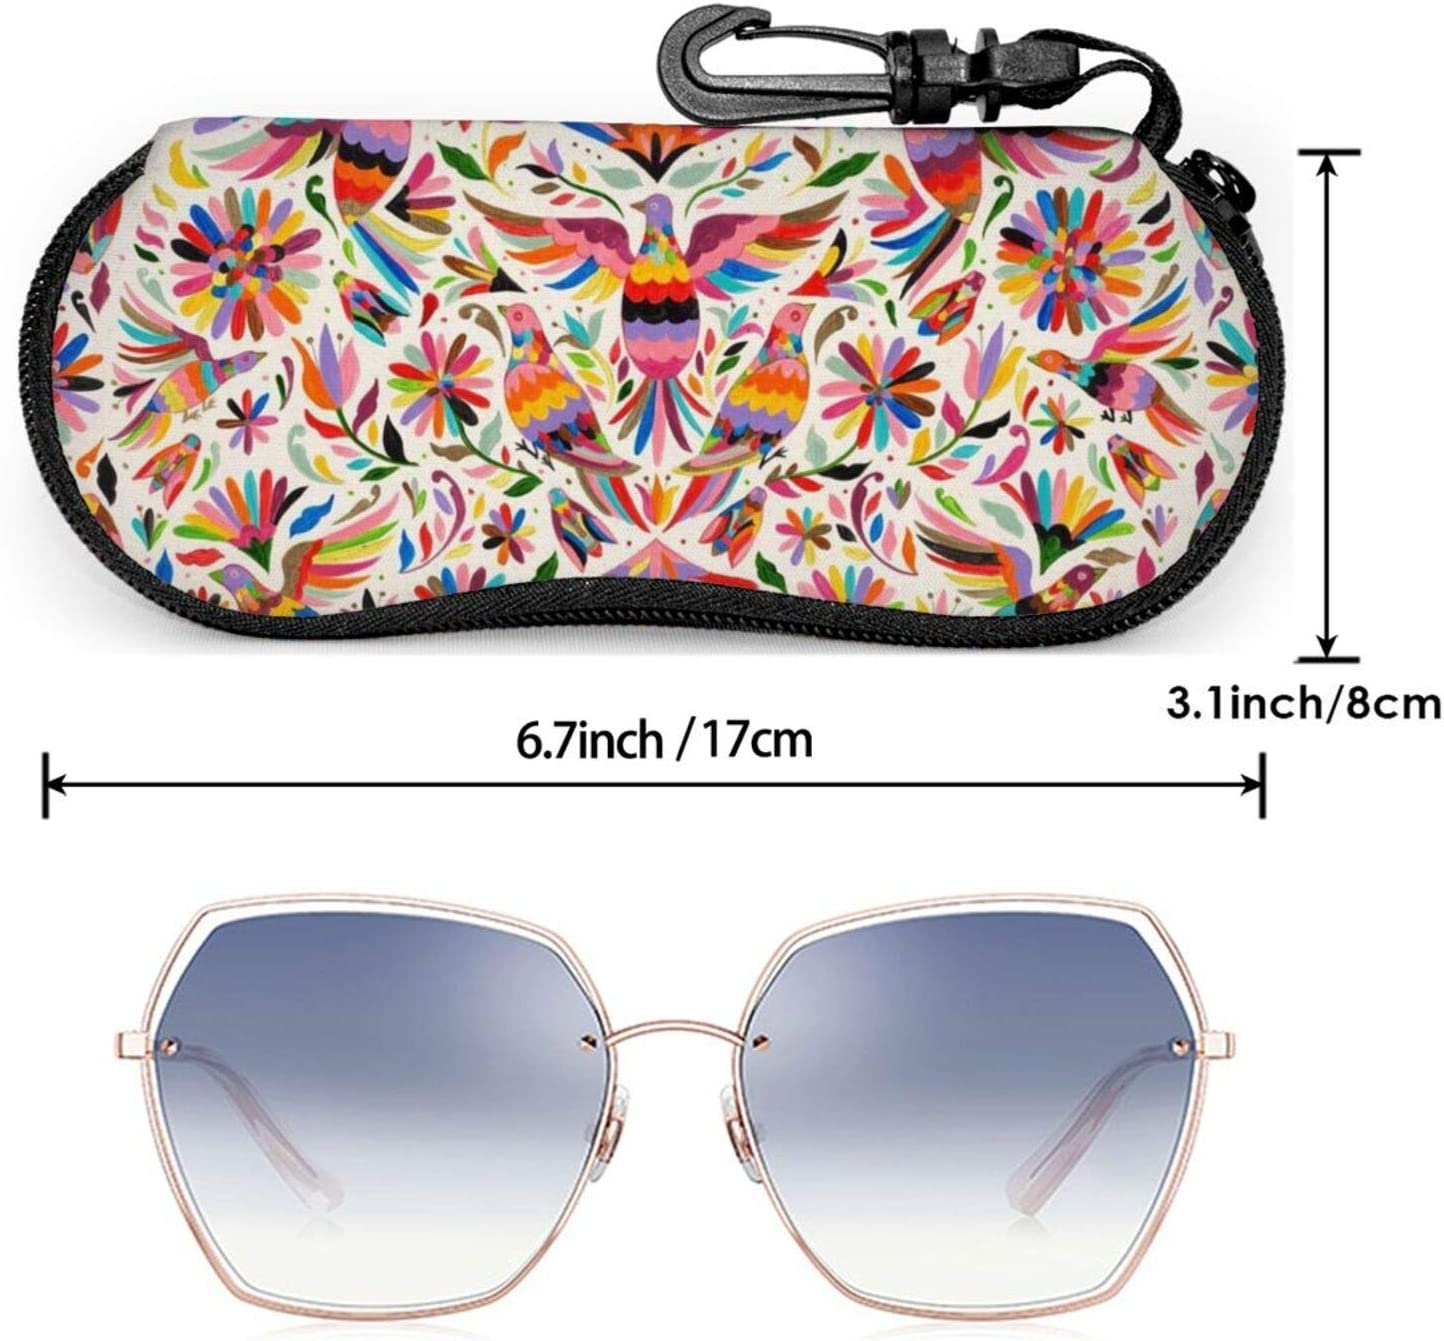 vvvw Sunglasses Soft Case with Belt Clip Mexican Ethnic Floral Colorful Birds Paisley Ultra Light Neoprene Zipper Eyeglass Glasses Pouch